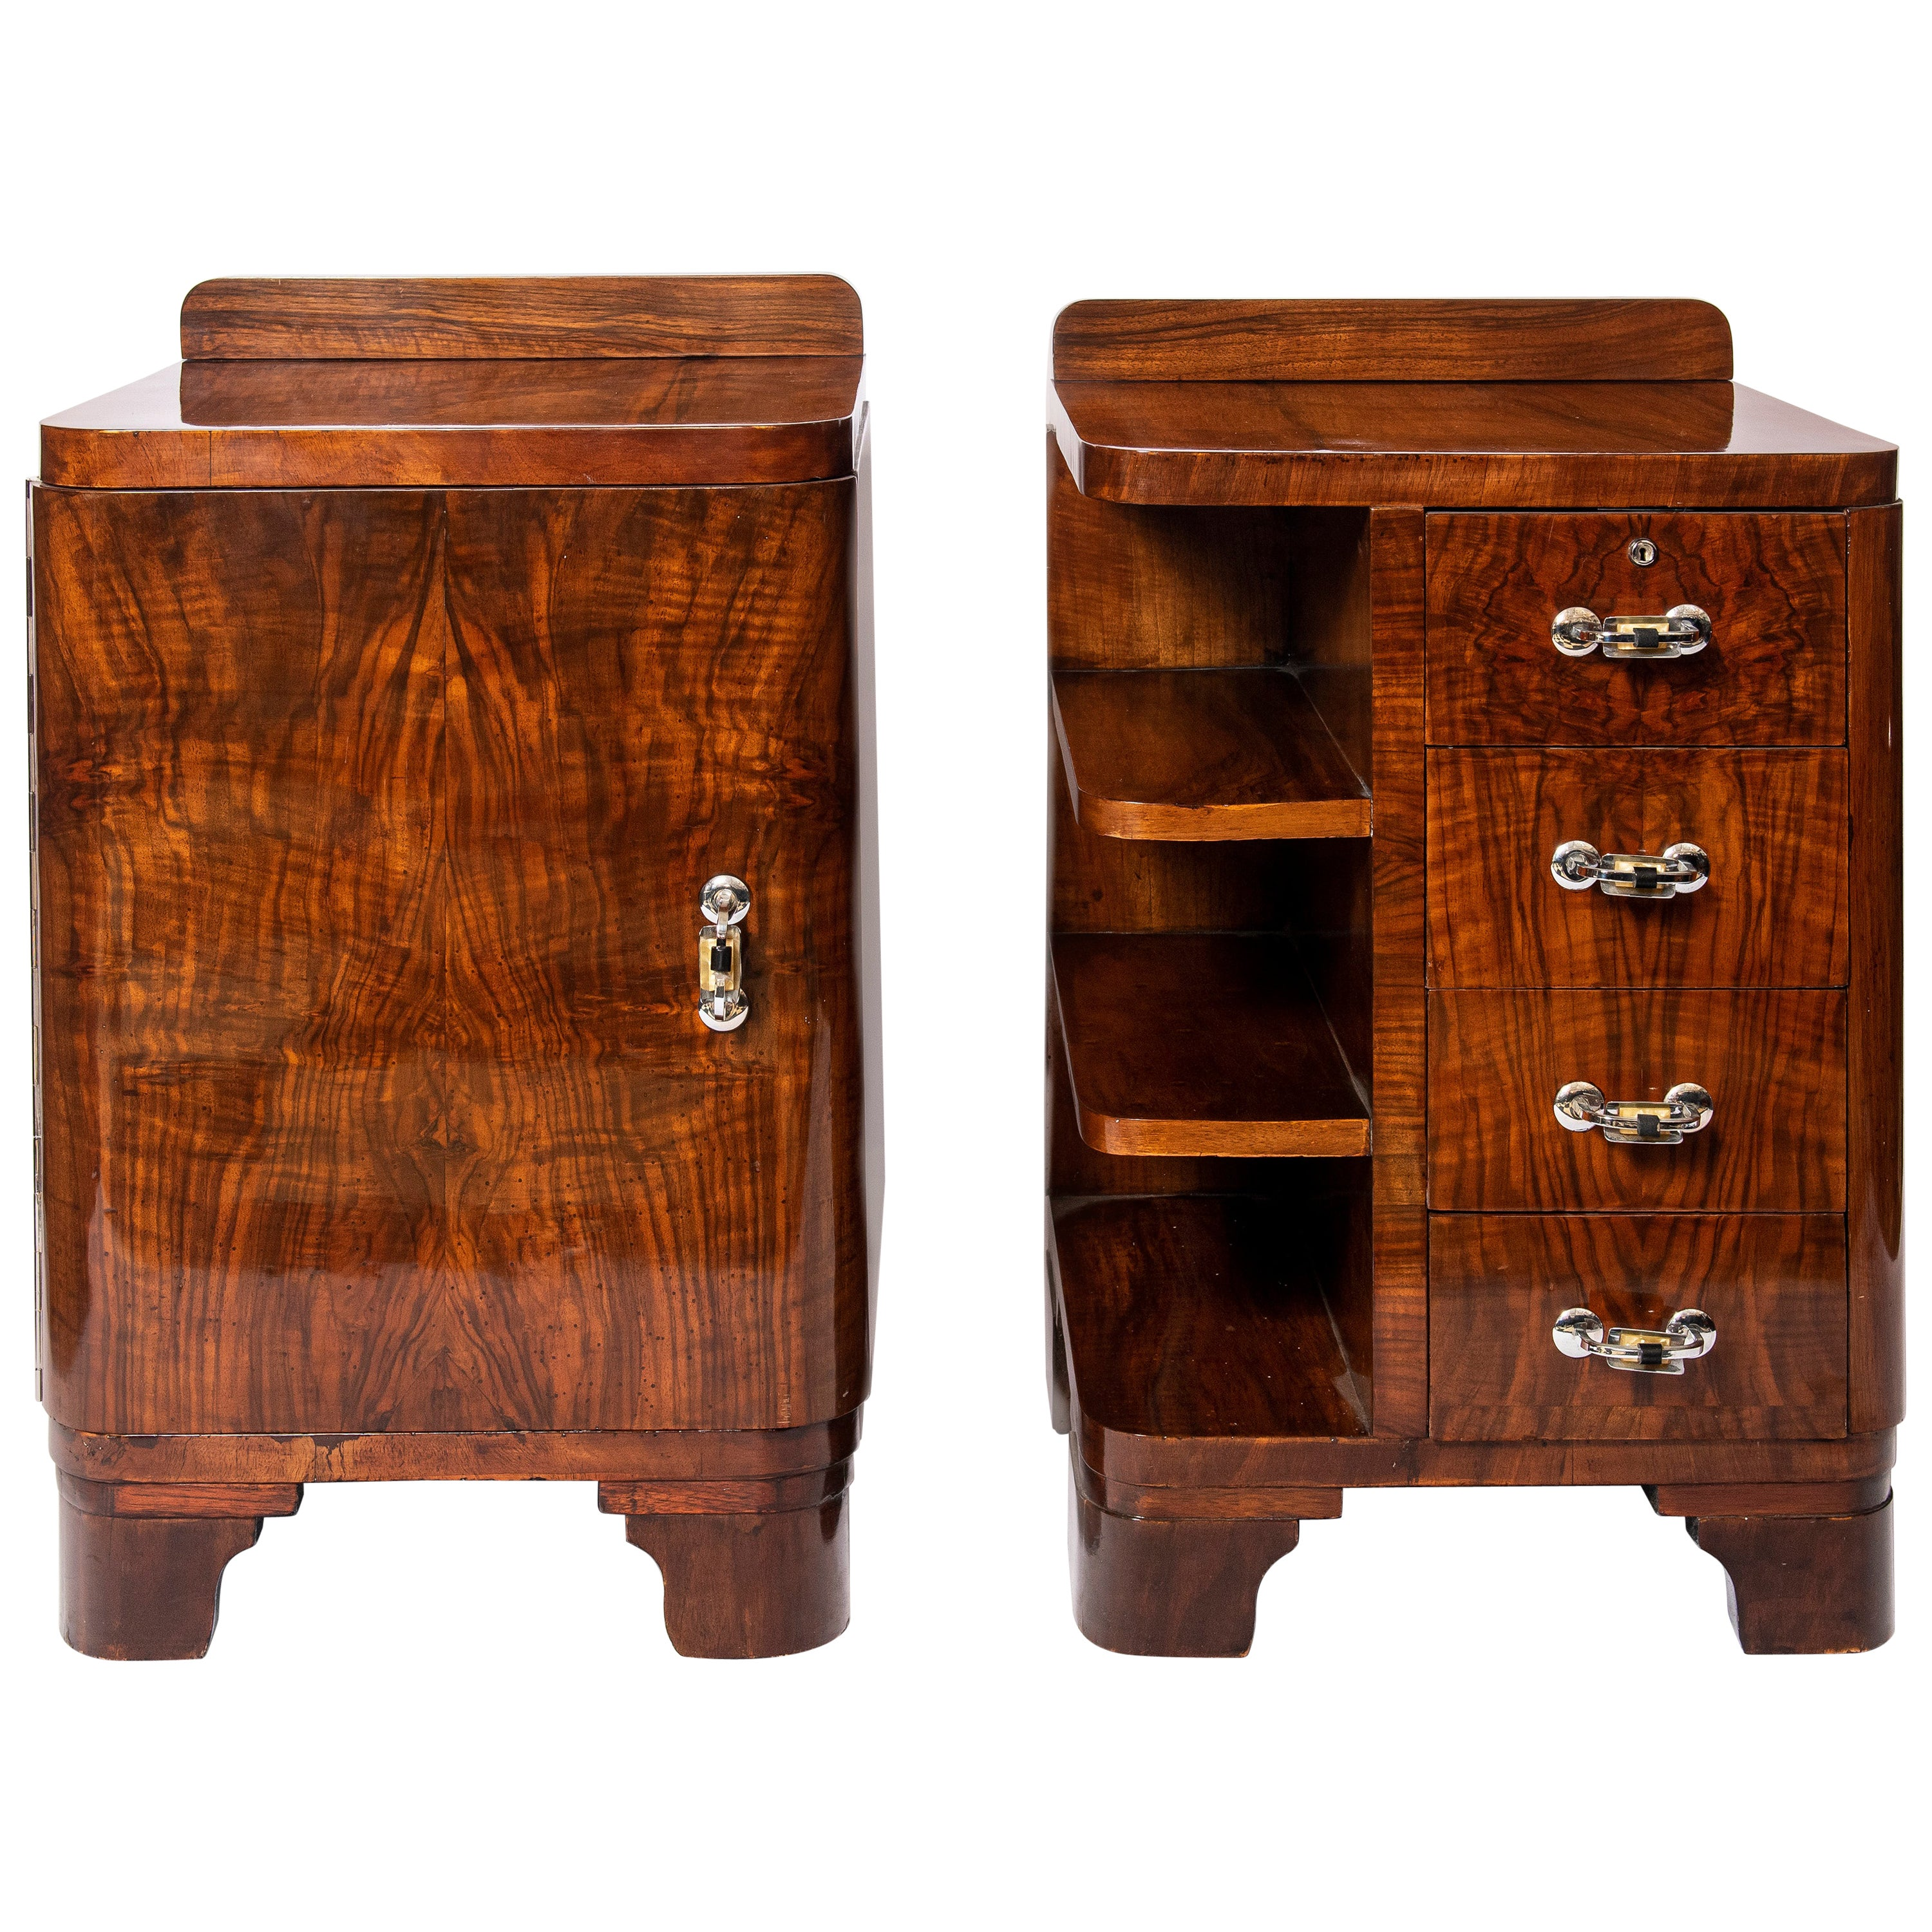 Pair of Wood and Chrome Metal Nightstands, Art Deco Period, France, circa 1940